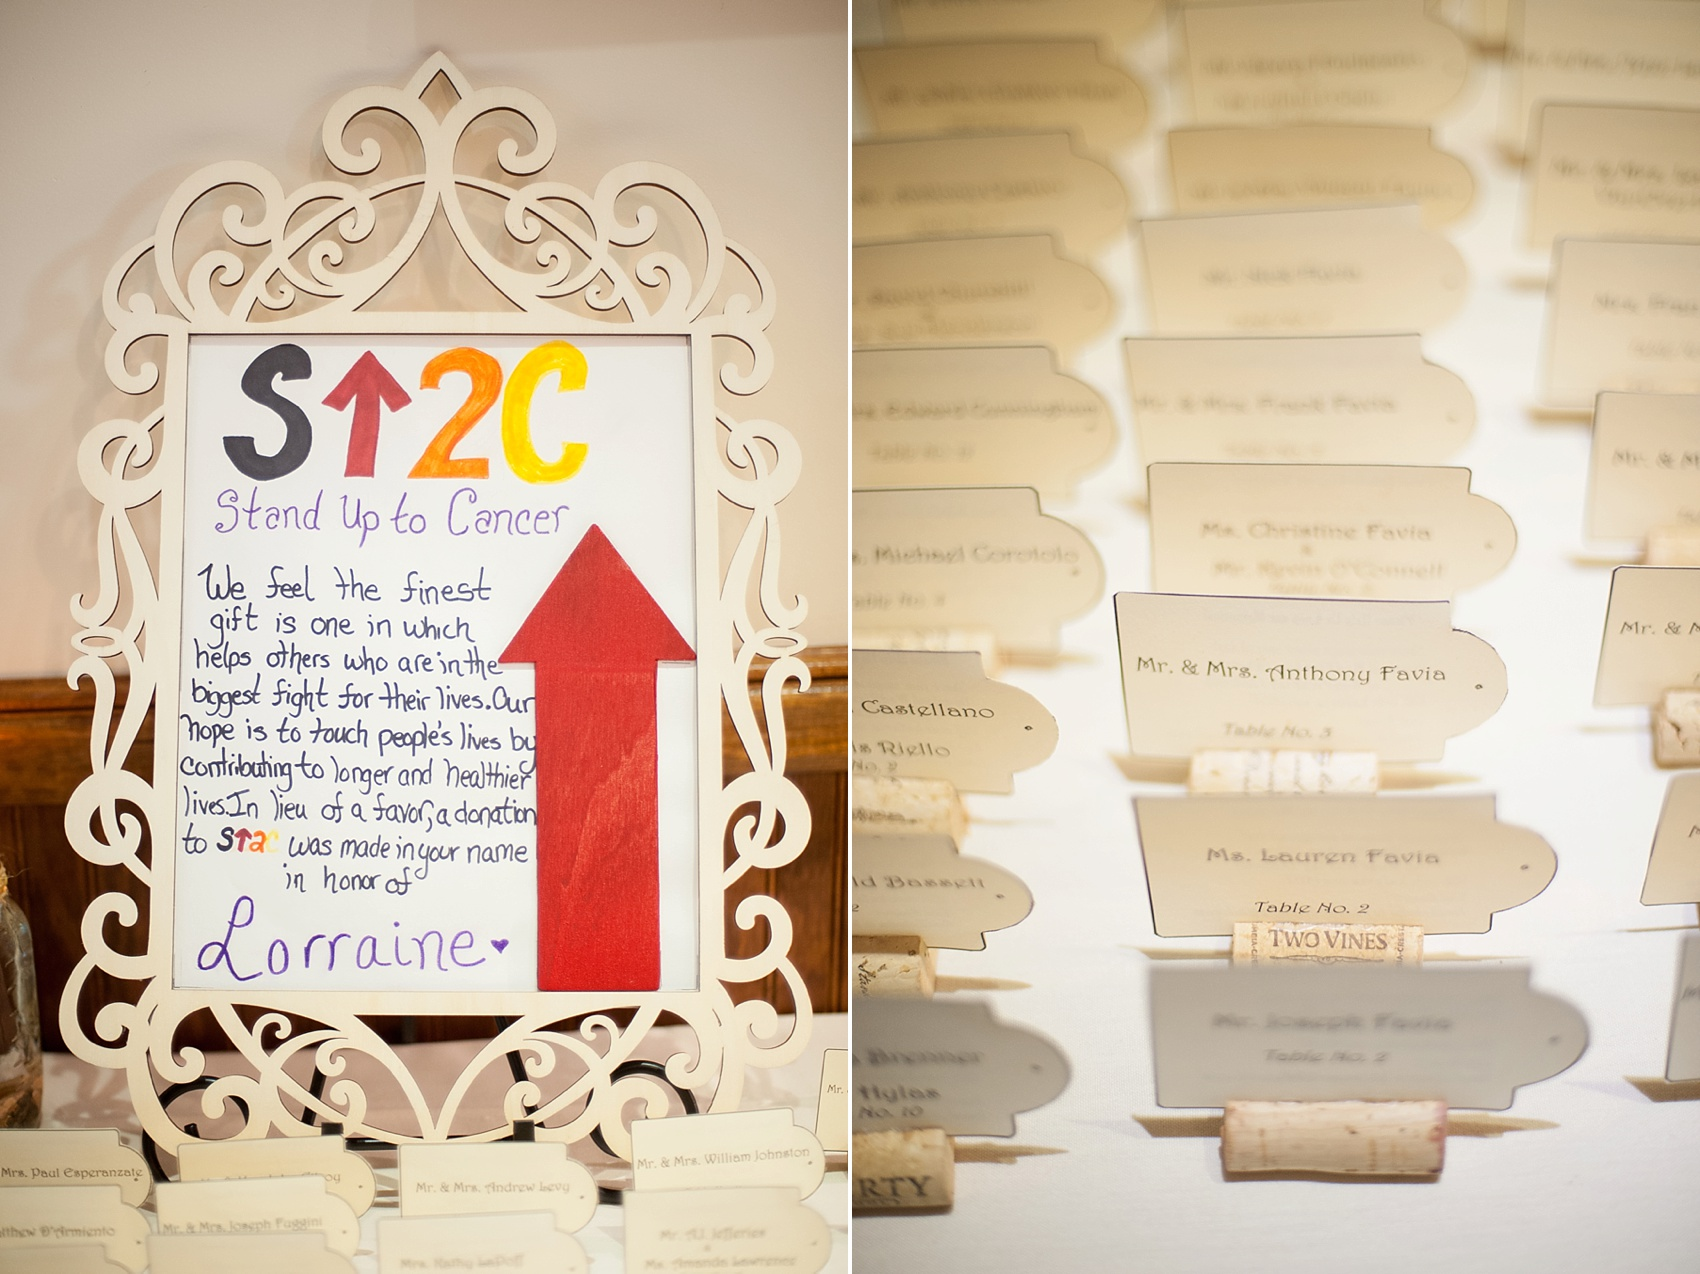 Stand Up to Cancer donation in lieu of wedding favors for a Hollow Brook Golf Club wedding in NY. Photos by Mikkel Paige Photography.